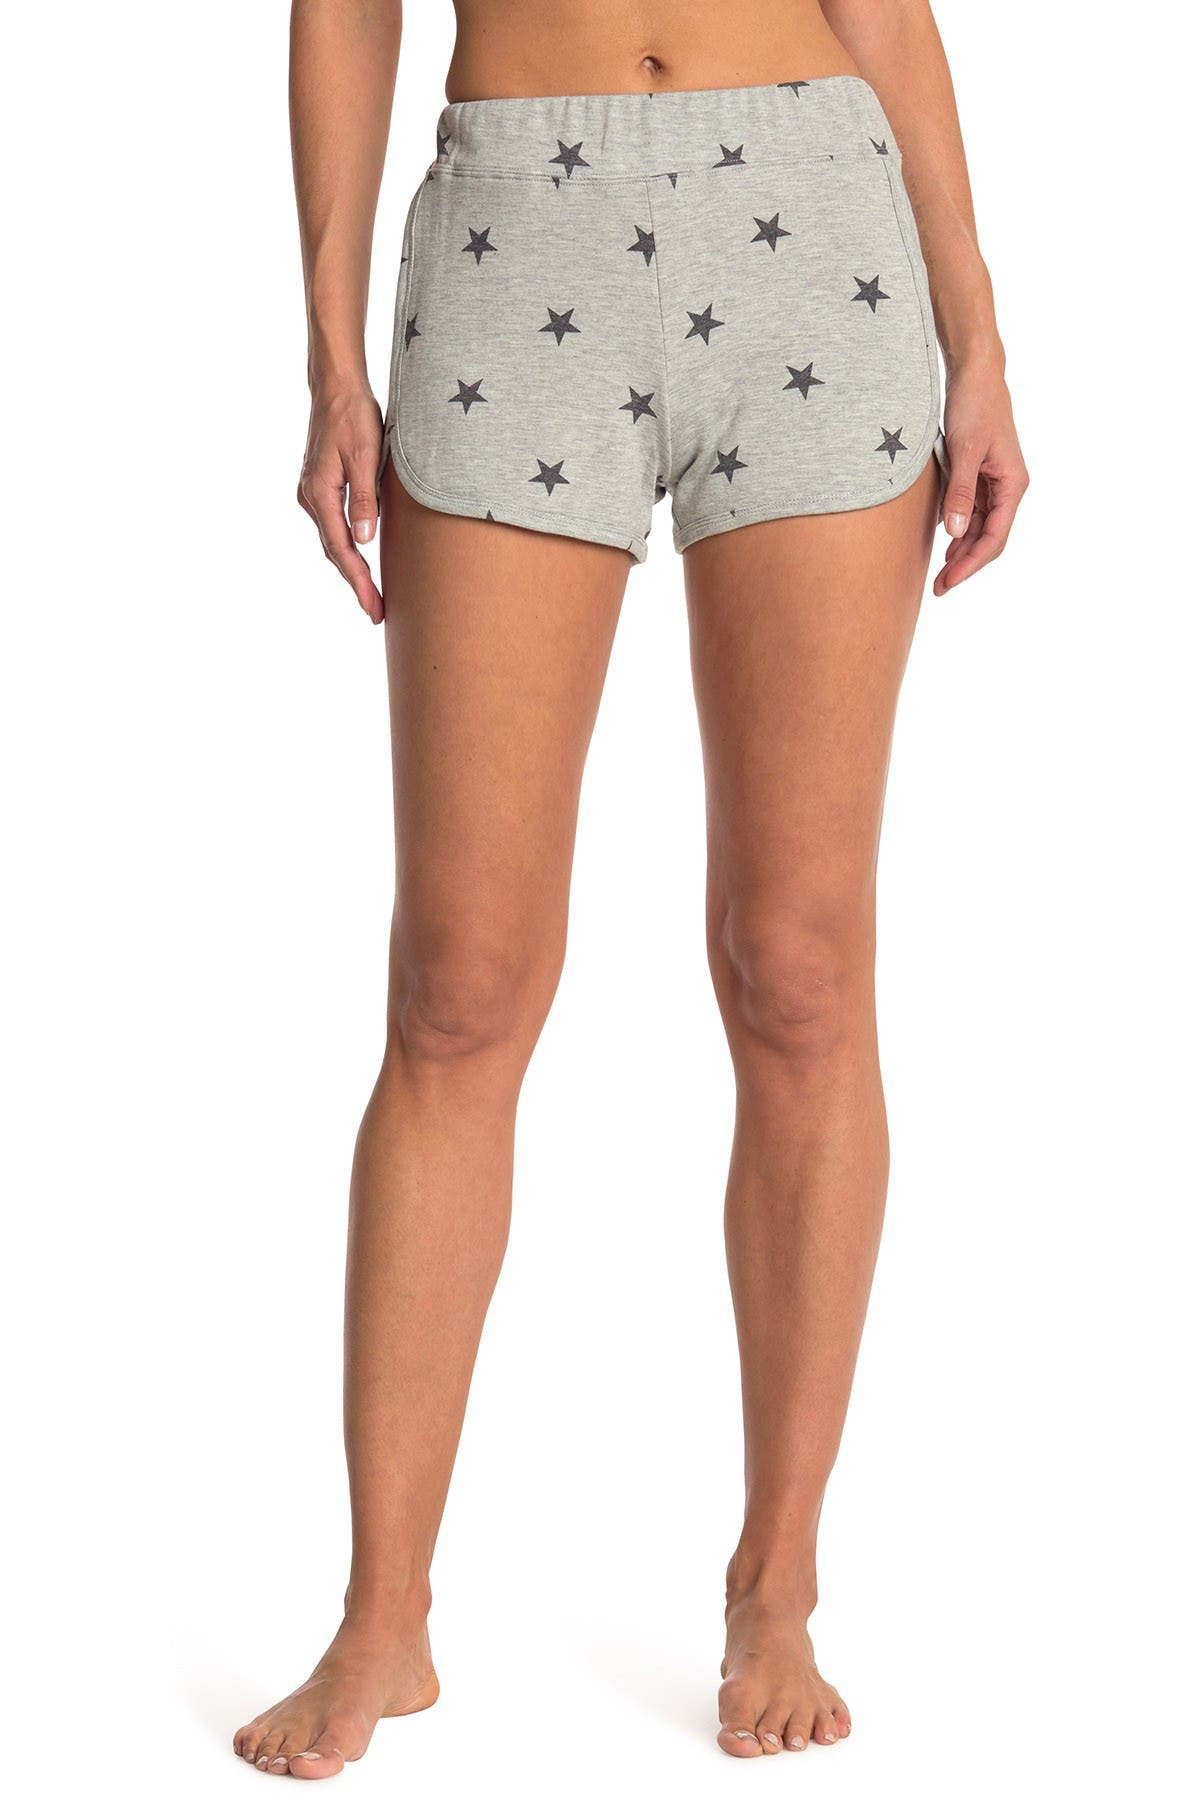 Image of ROW A Star Lounge Shorts